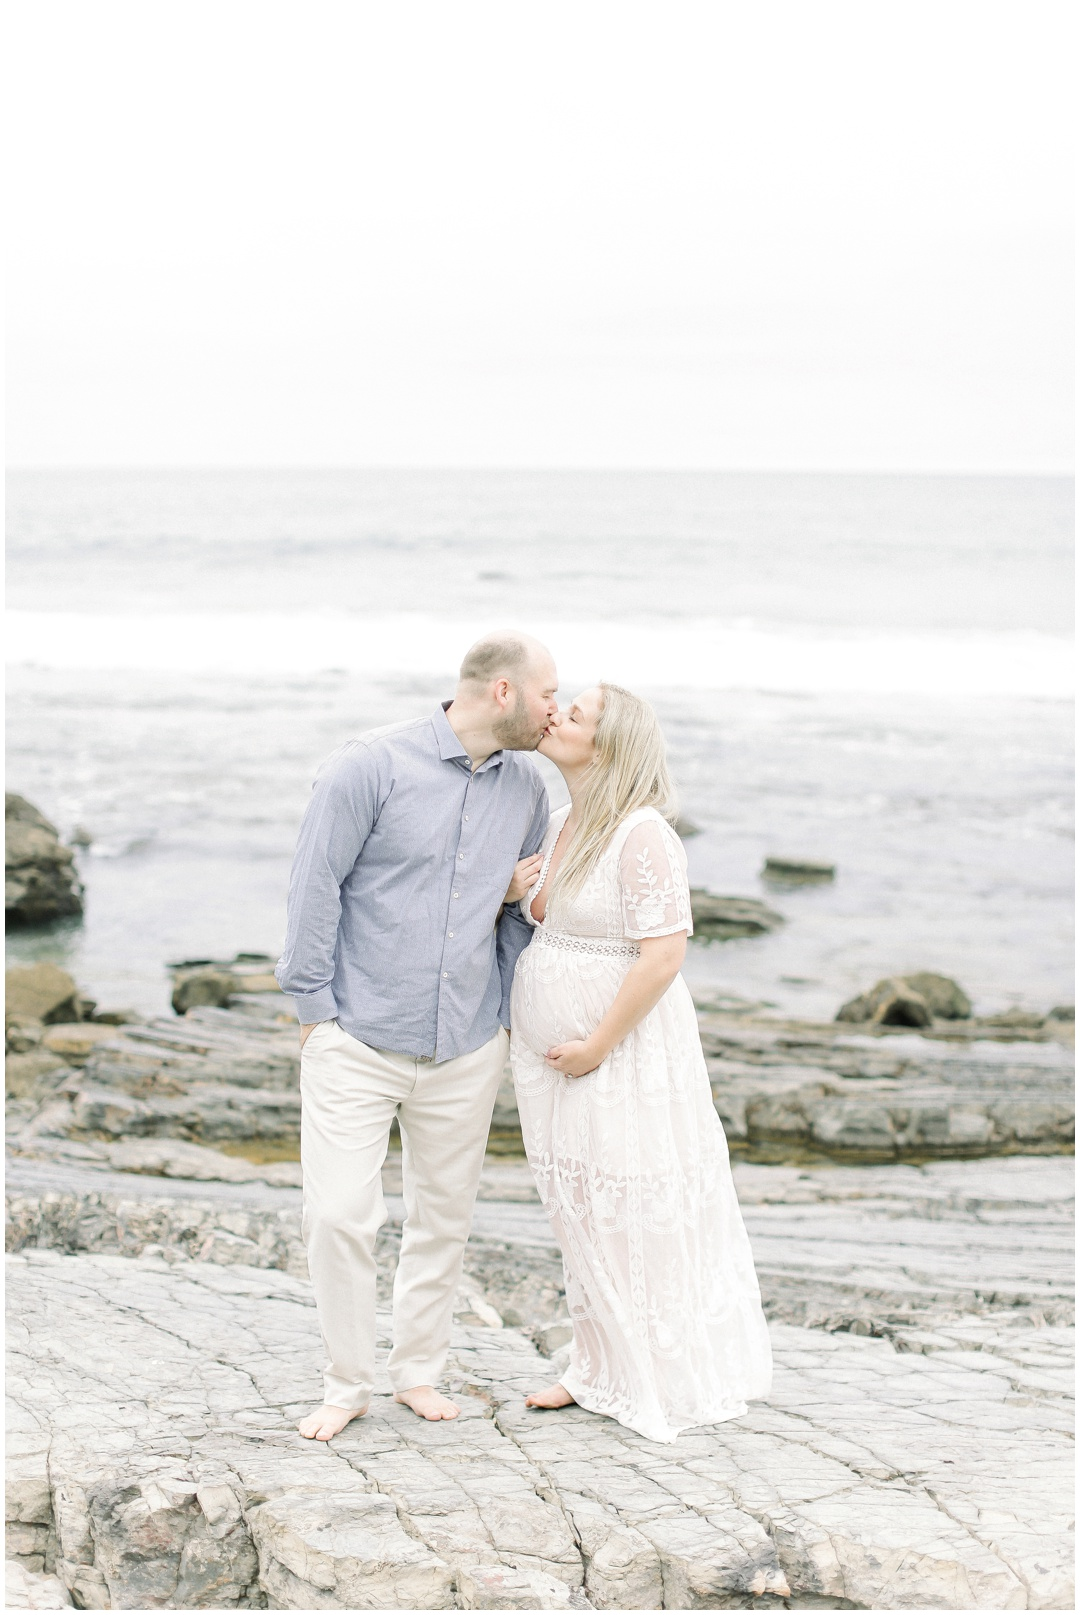 Newport_Beach_Newborn_Light_Airy_Natural_Photographer_Newport_Beach_Photographer_Orange_County_Family_Photographer_Cori_Kleckner_Photography_Newport_Beach_Photographer_Marisa_Podesto_Todd_Podesto__3982.jpg